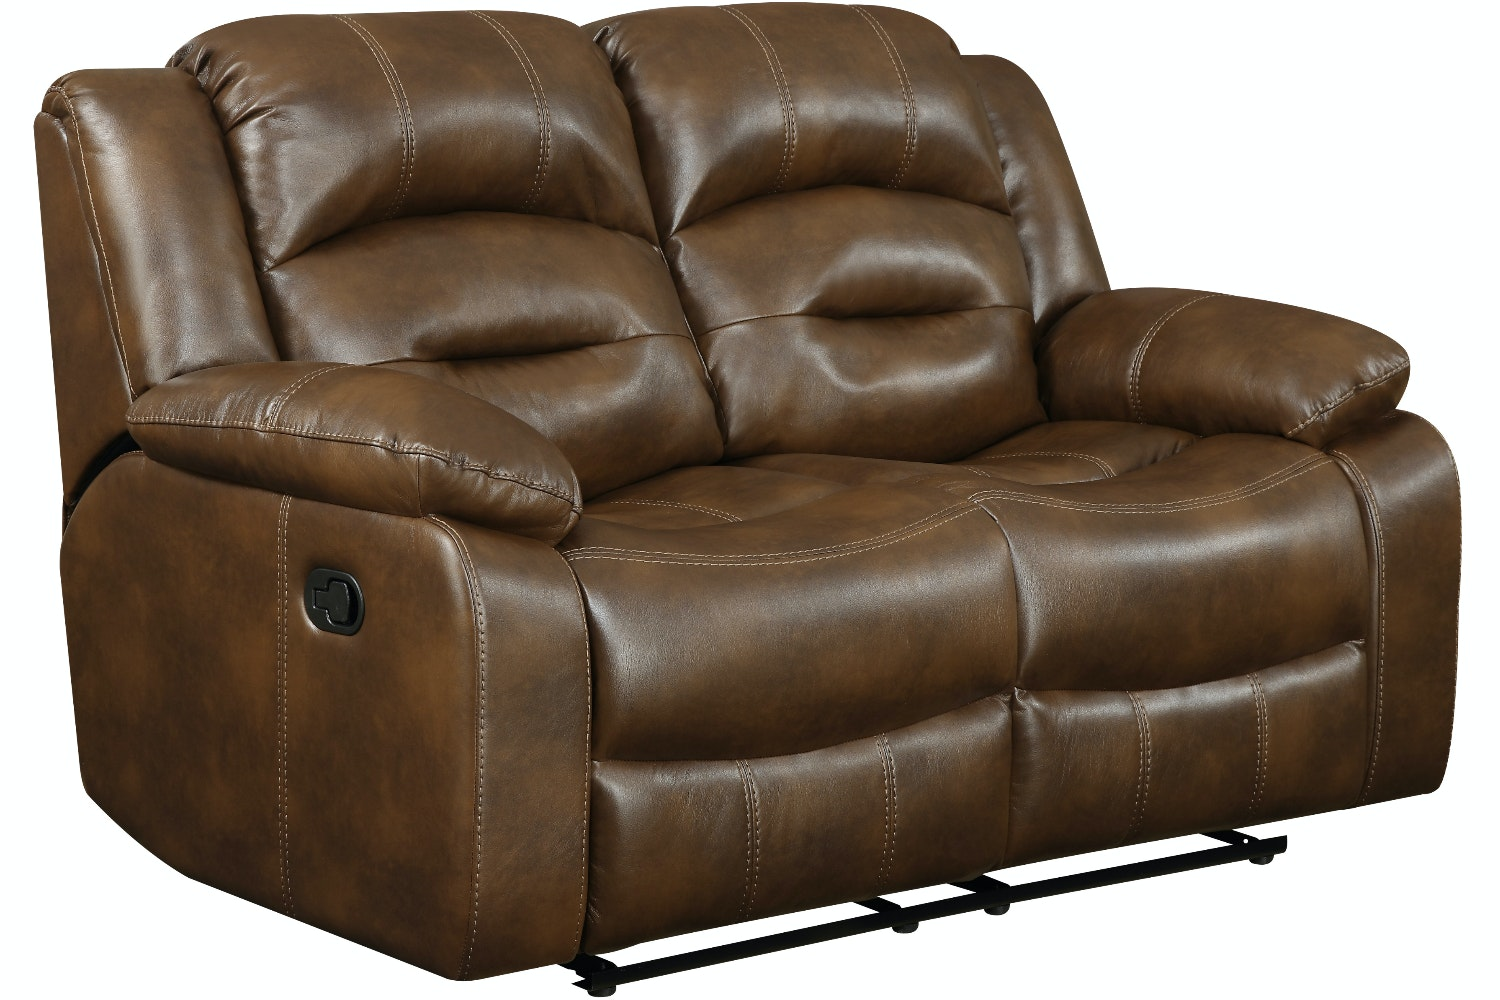 Hunter 2 Seater Recliner Sofa | Tan  sc 1 st  Harvey Norman & Hunter 2 Seater Sofa (Recliner) | Tan | Harvey Norman | Ireland islam-shia.org